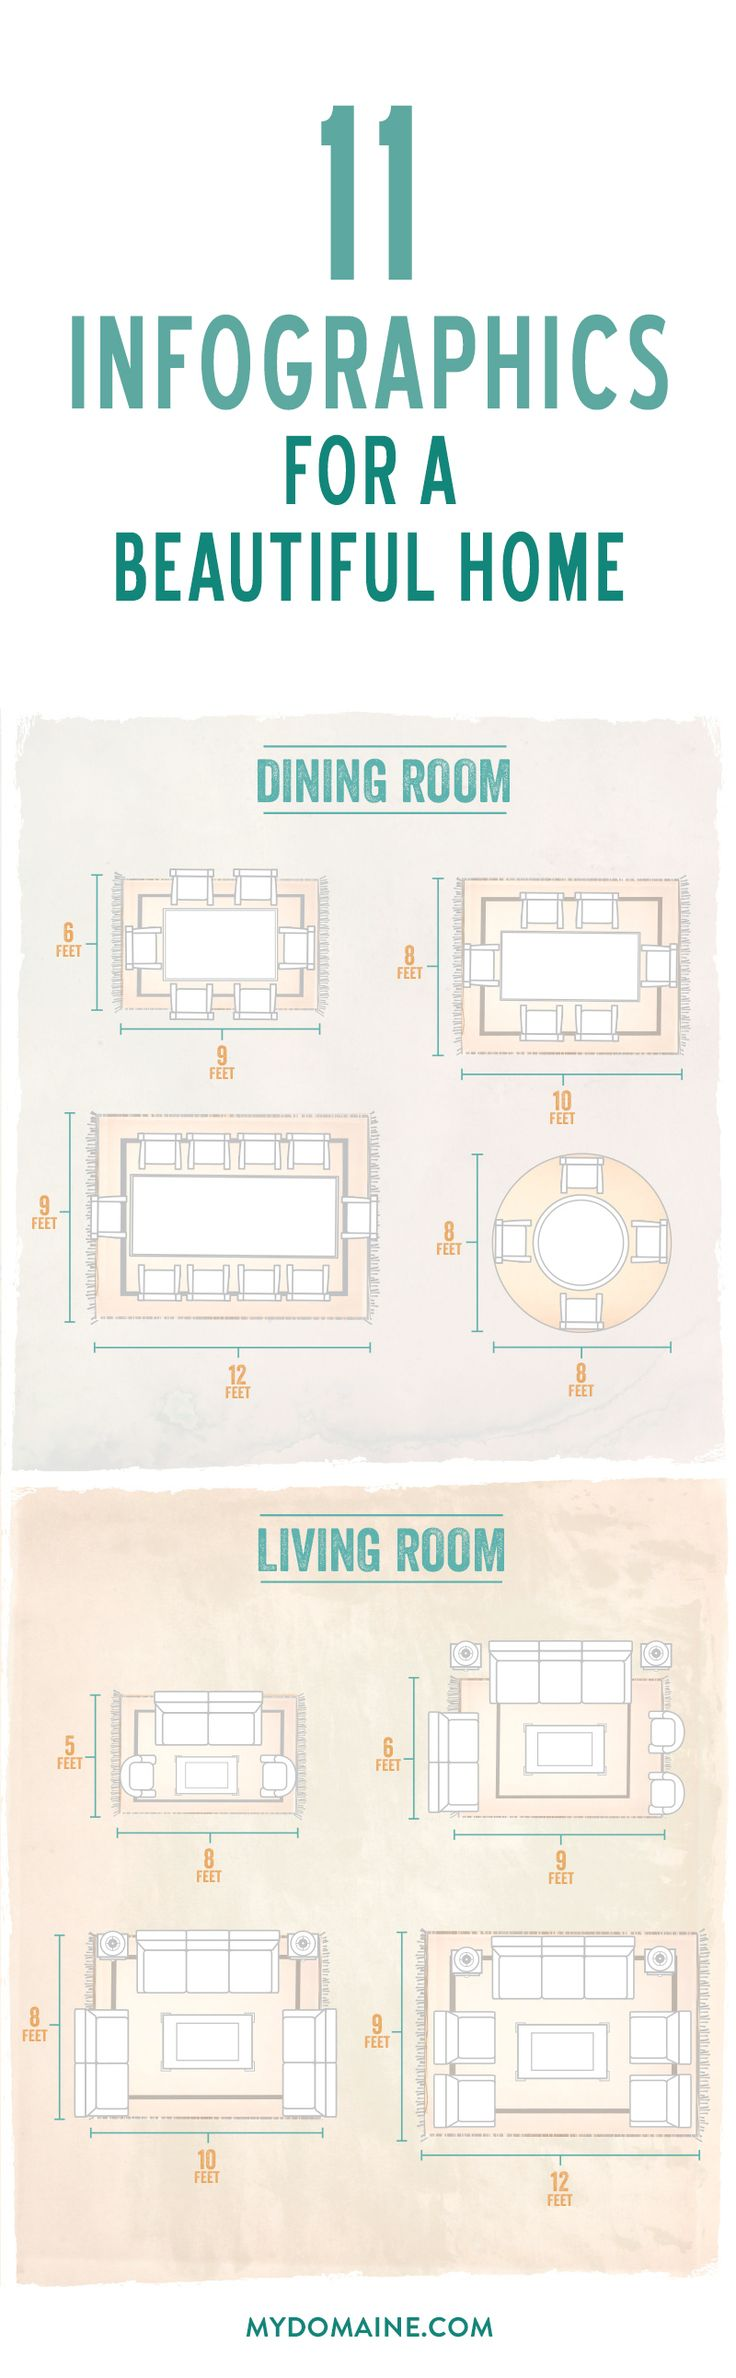 You're going to want to print these out for your next renovation